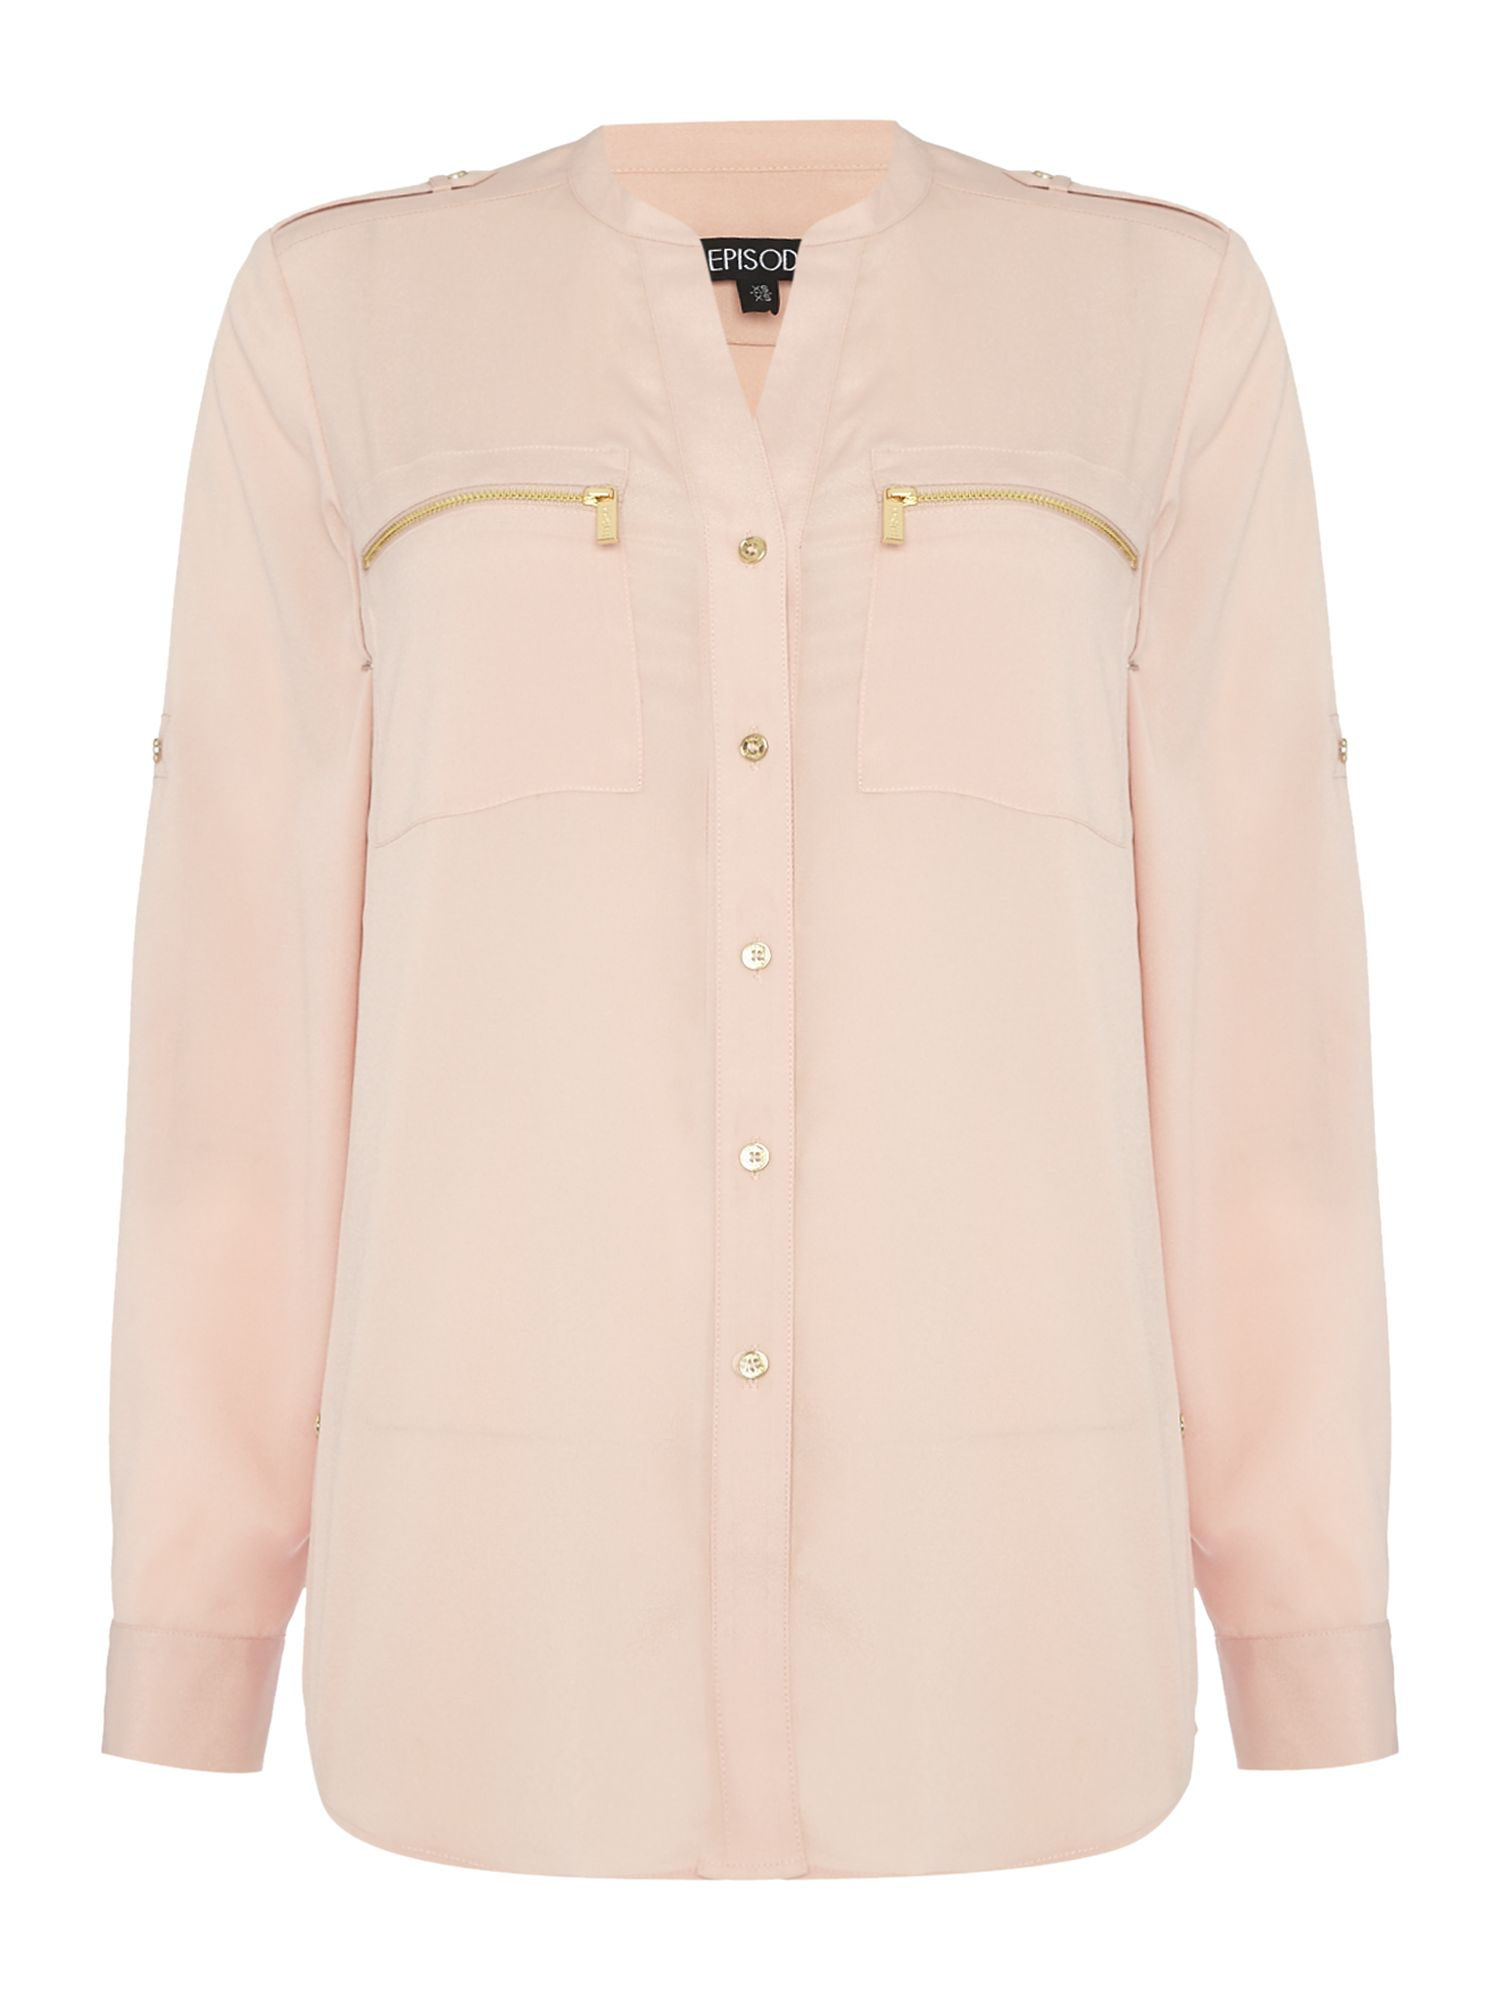 Episode Episode Zip Pocket Shirt, Blush